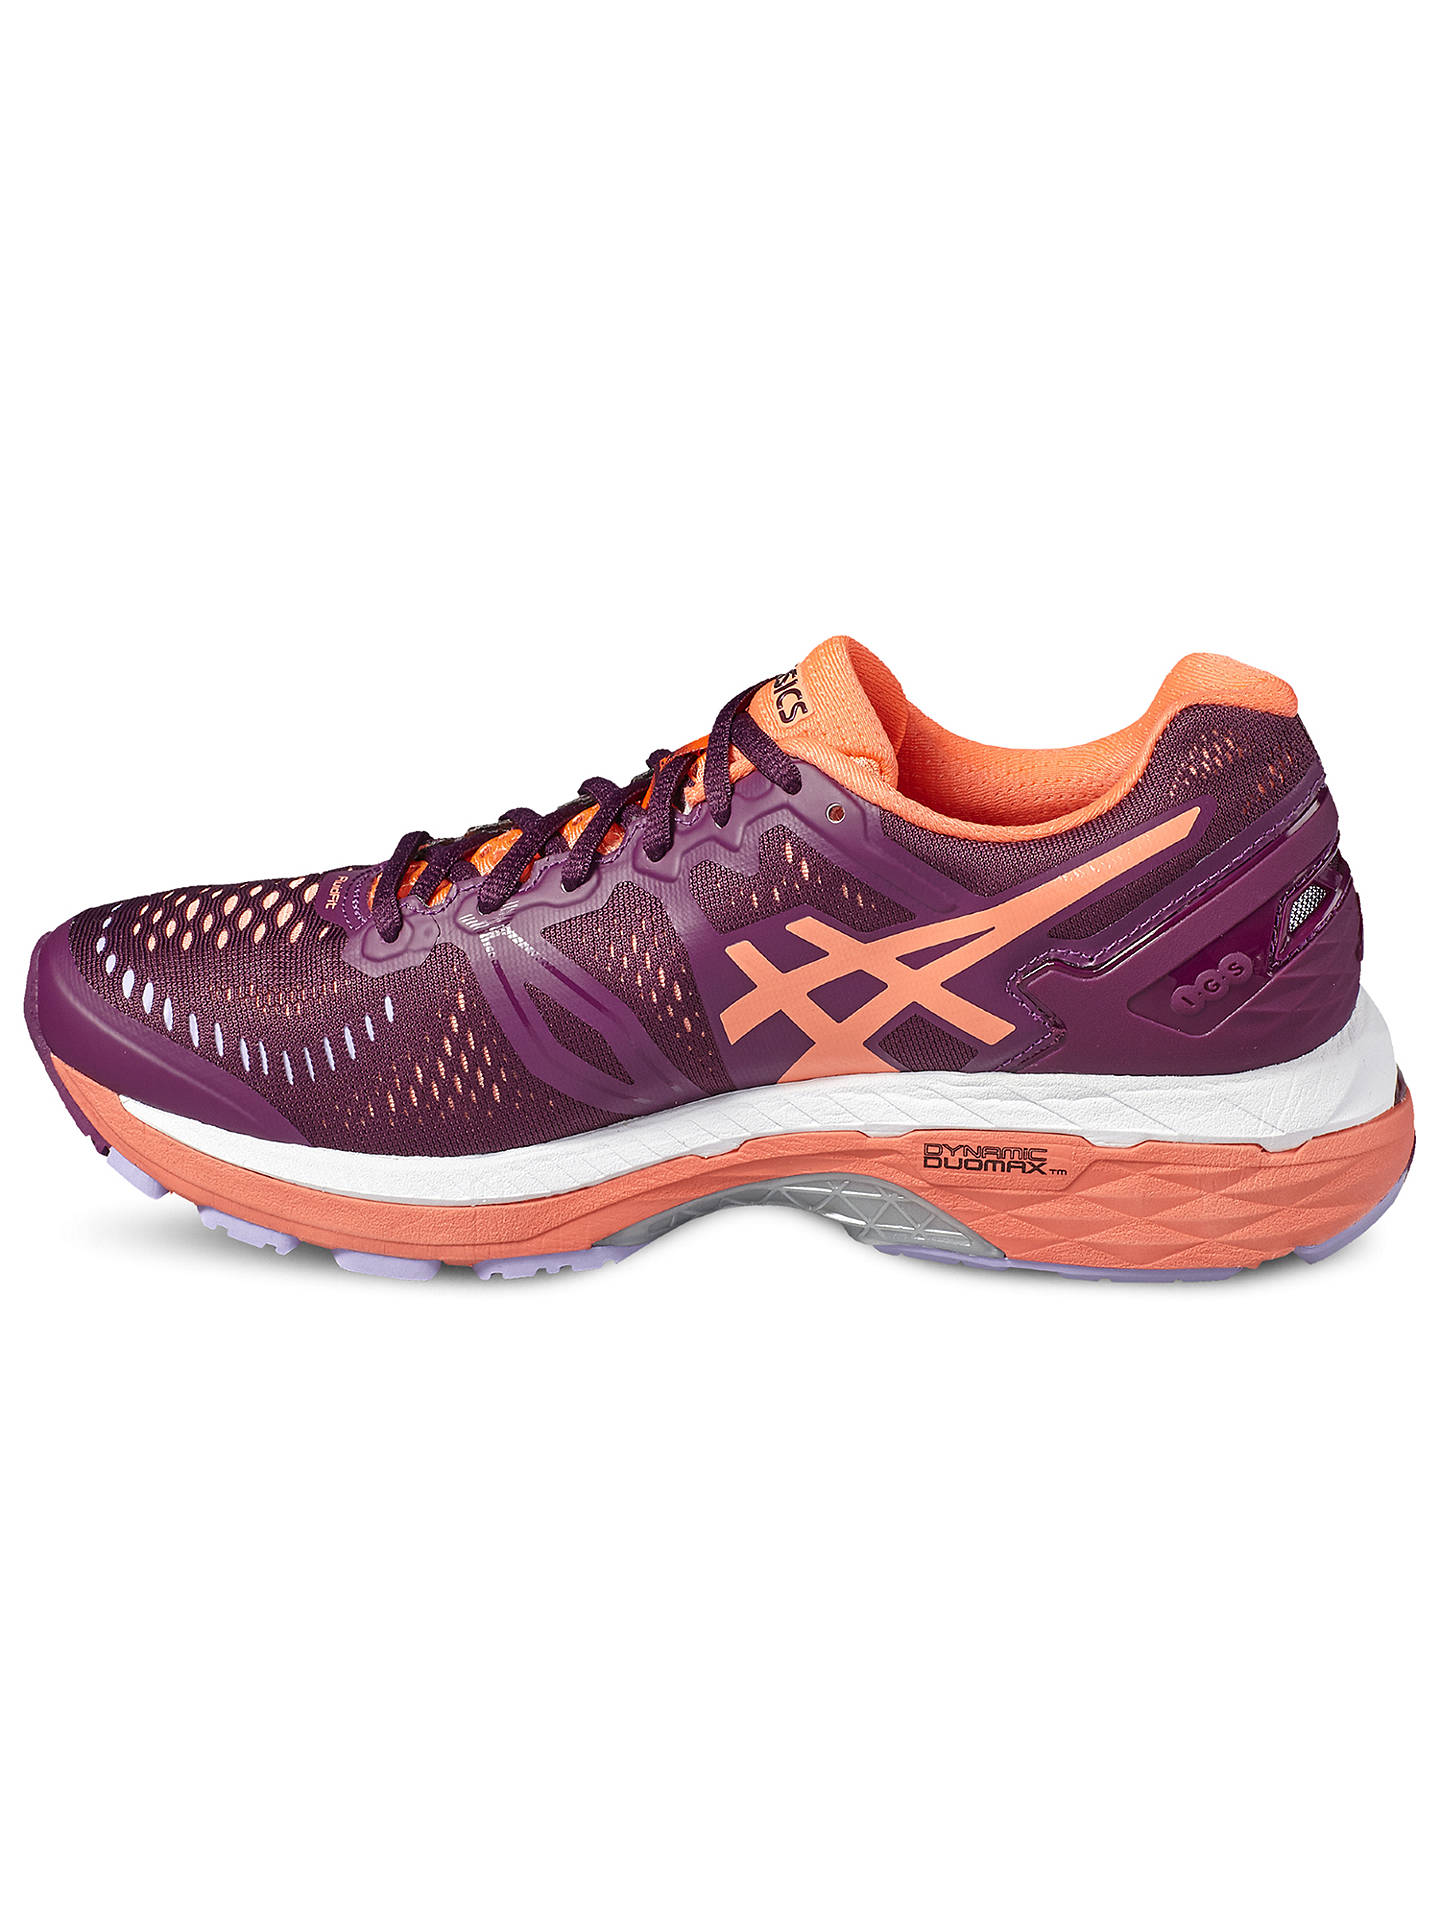 new product 0f83d 2b051 Asics GEL-Kayano 23 Women's Running Shoes, Purple/Coral at ...